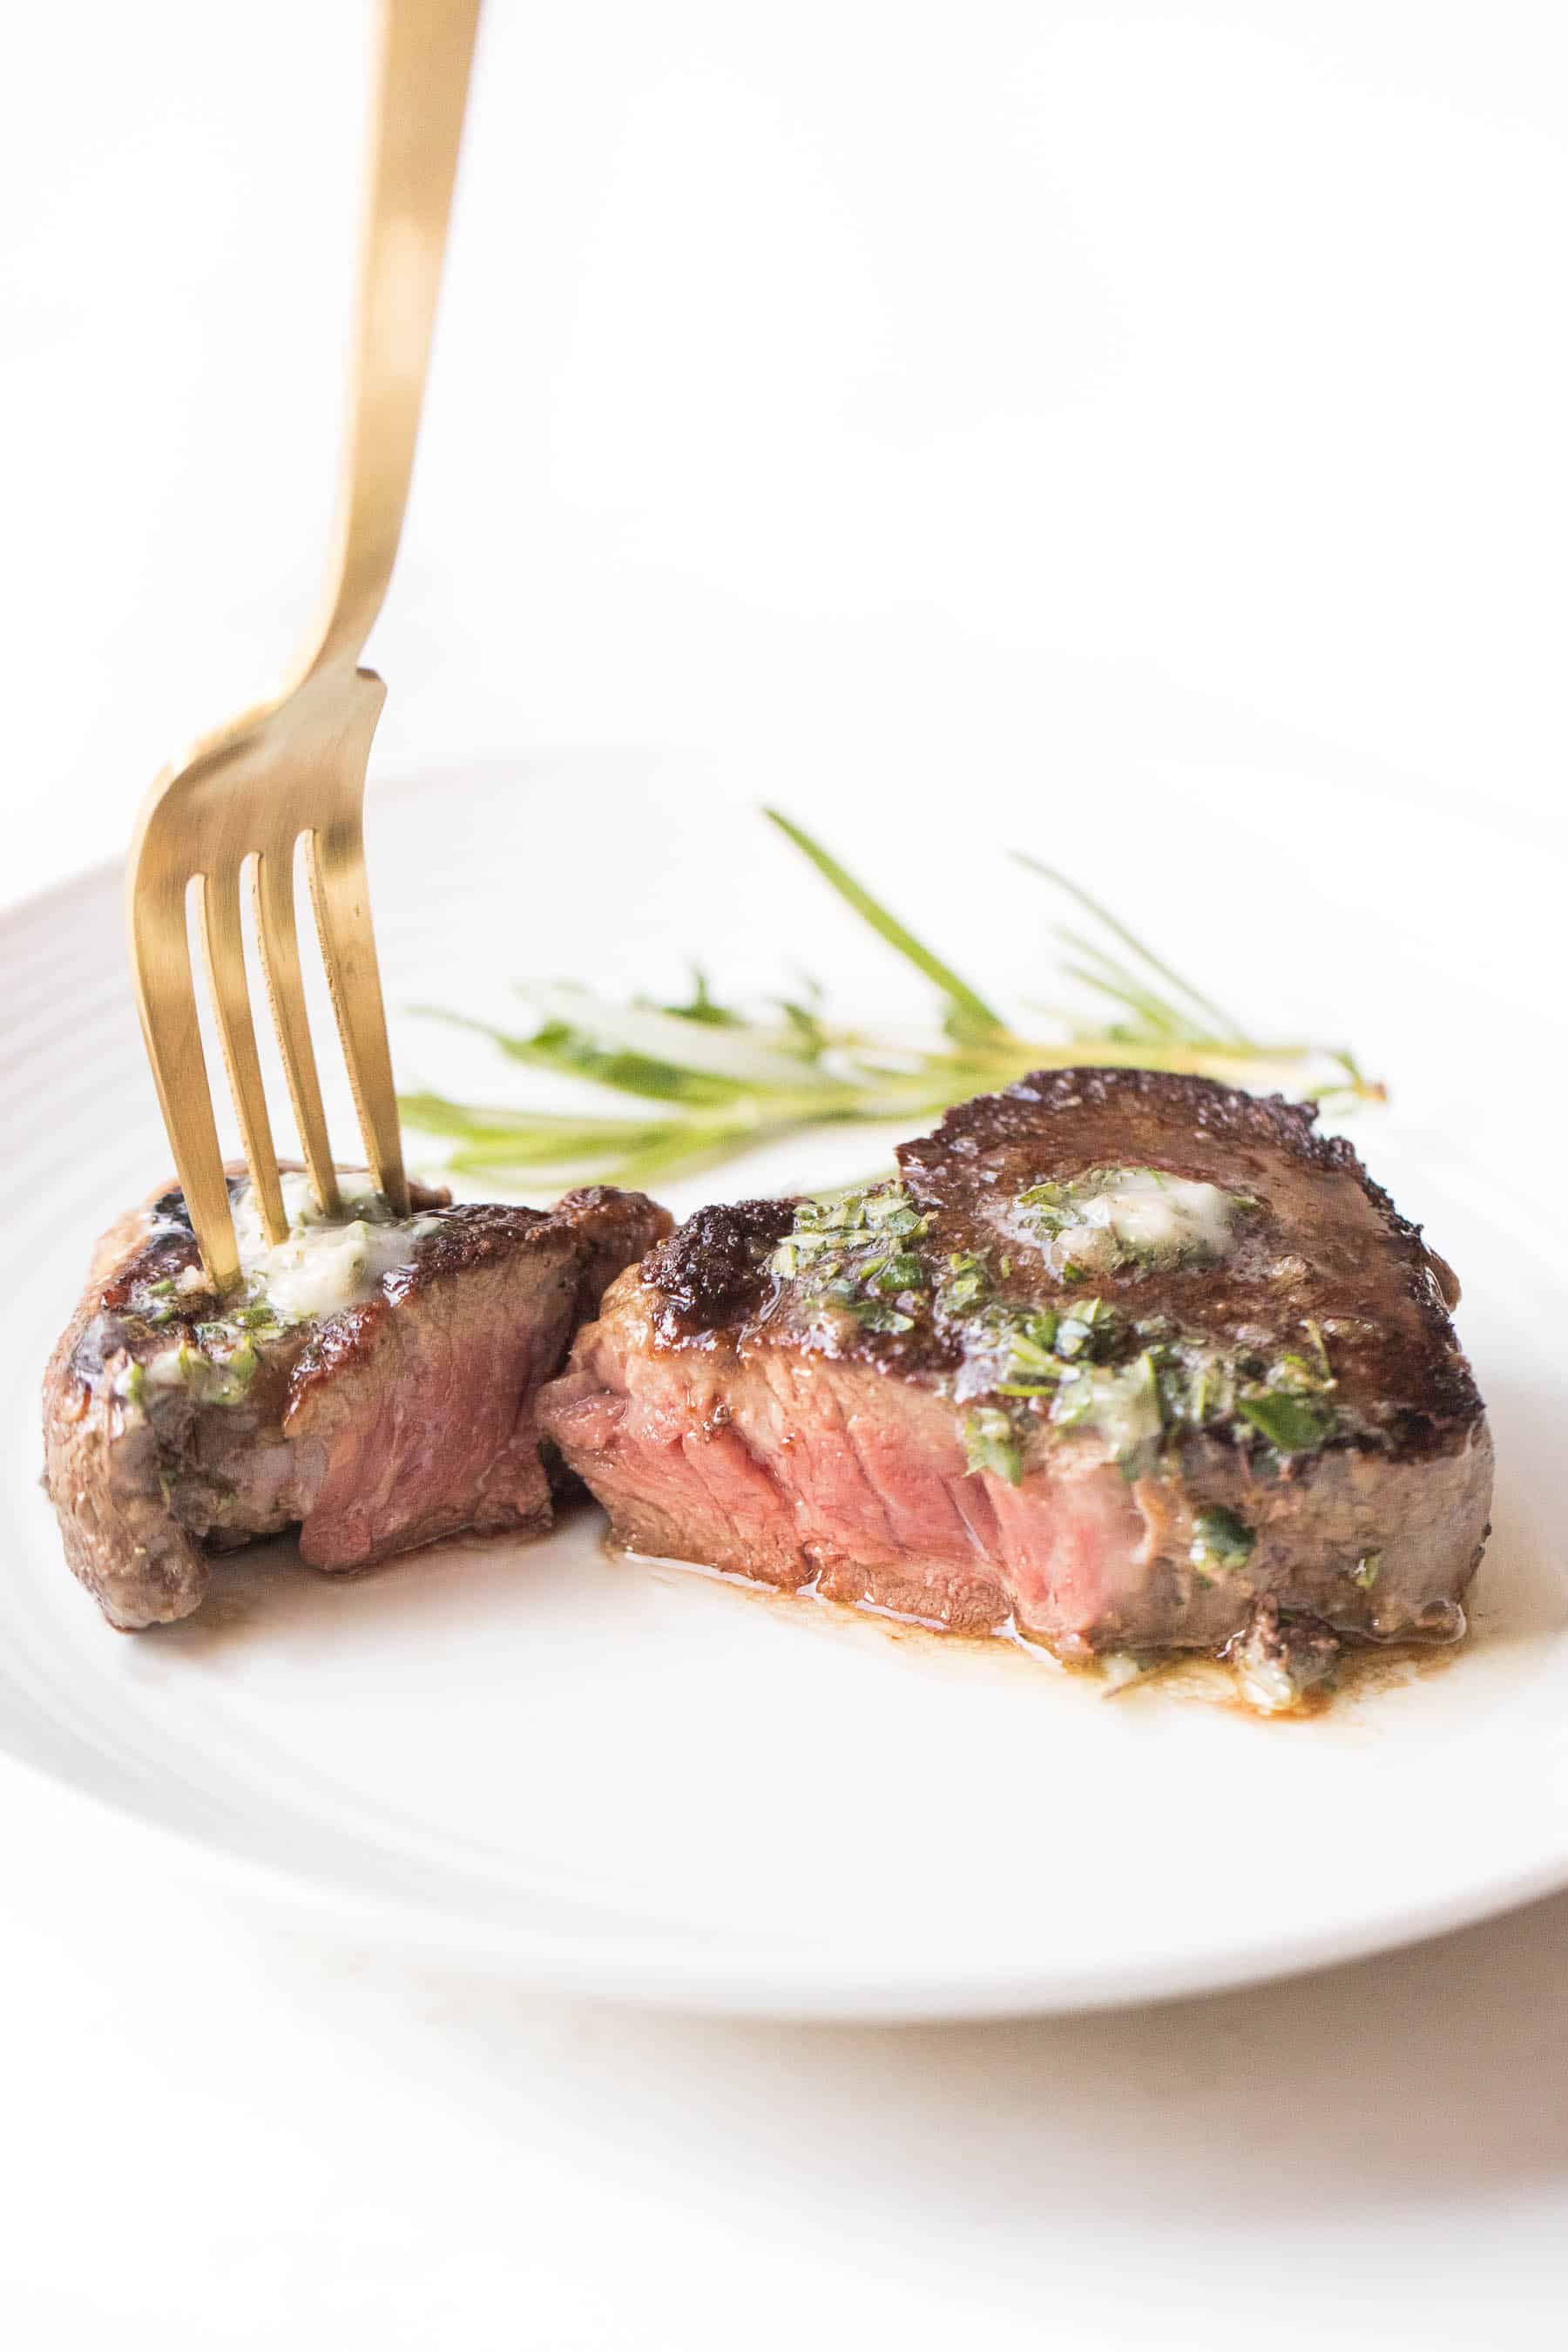 Filet mignon cut in half topped with herb butter on a white plate and white background